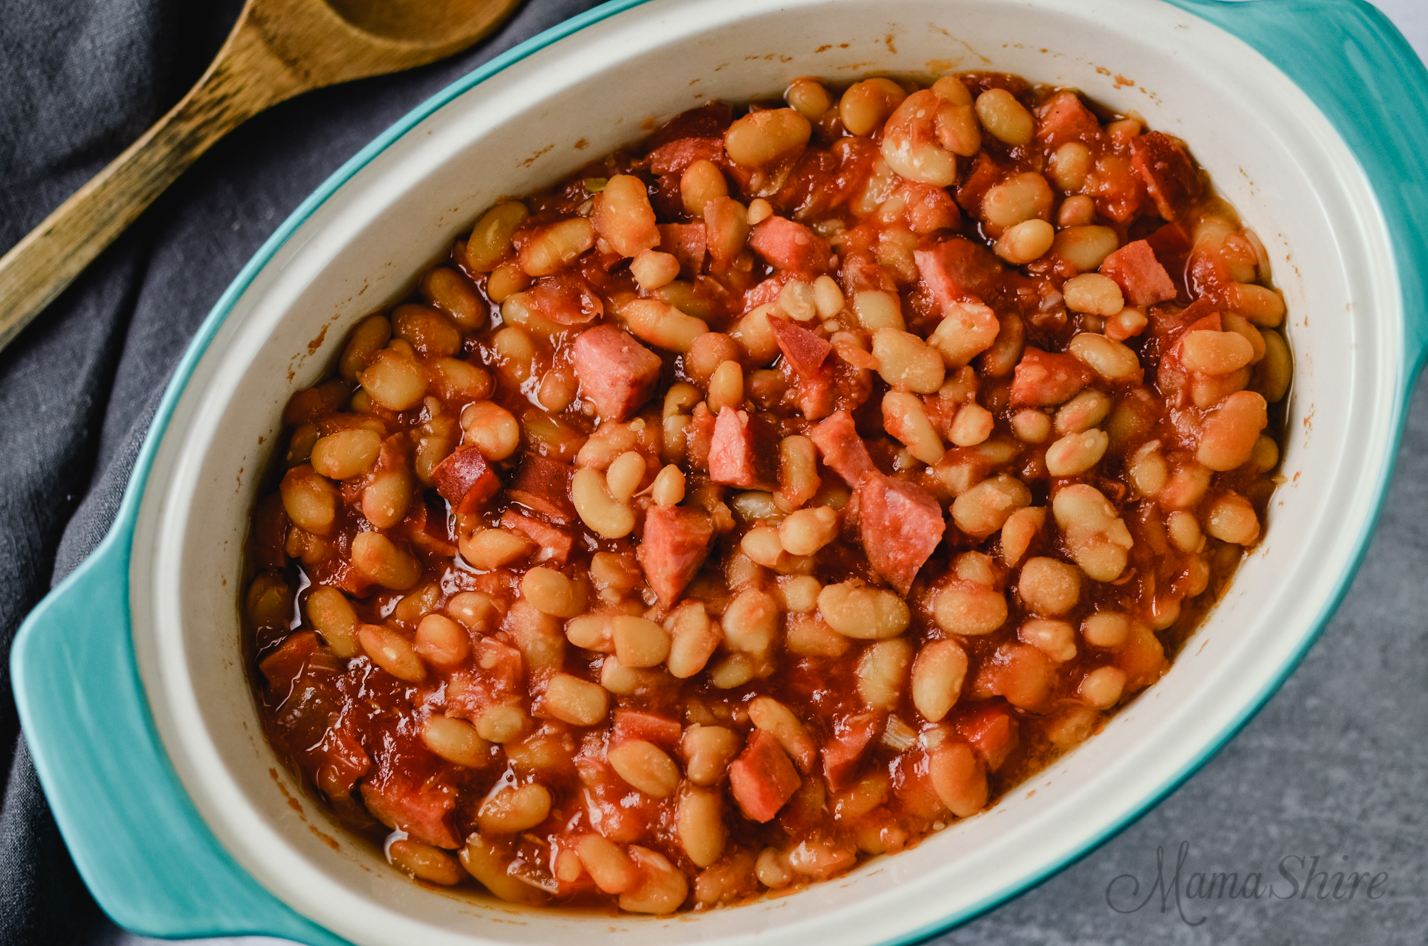 Baked beans in a casserole dish.